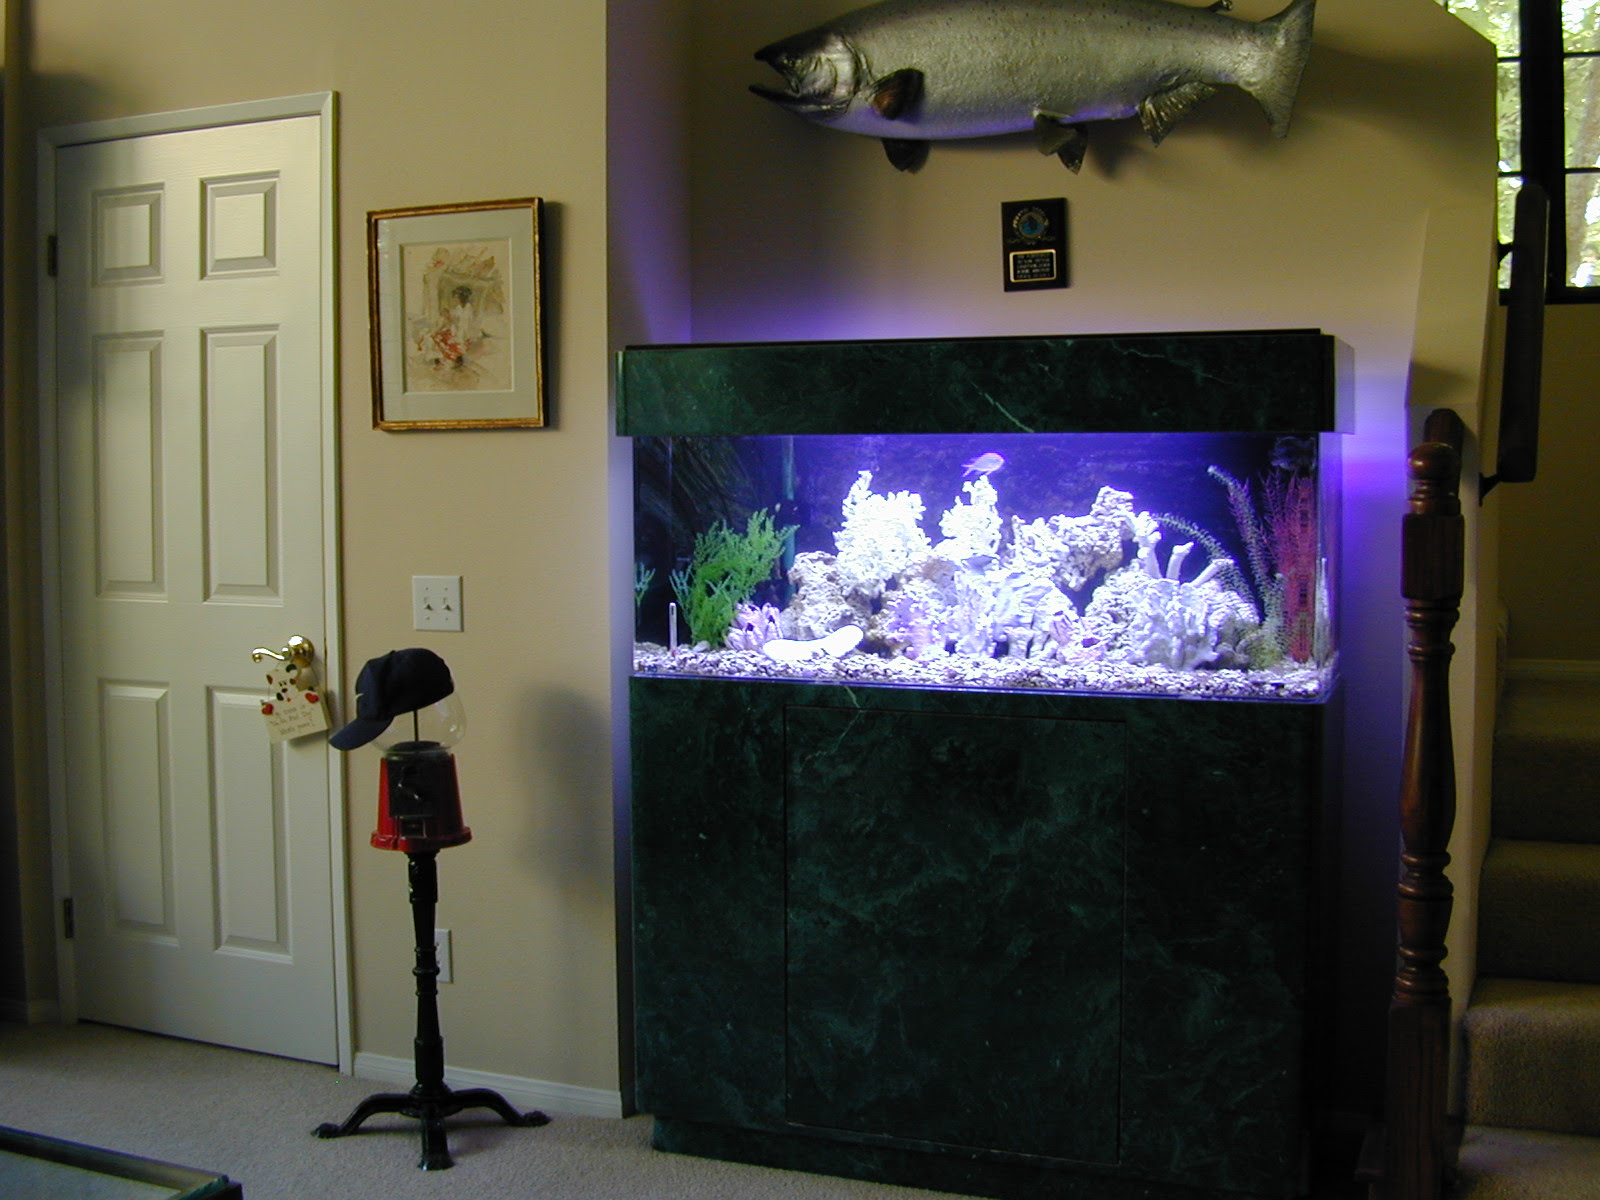 60 Gallon Marine Fish Tank, Aquarium Design, Marine Aquariums and ...